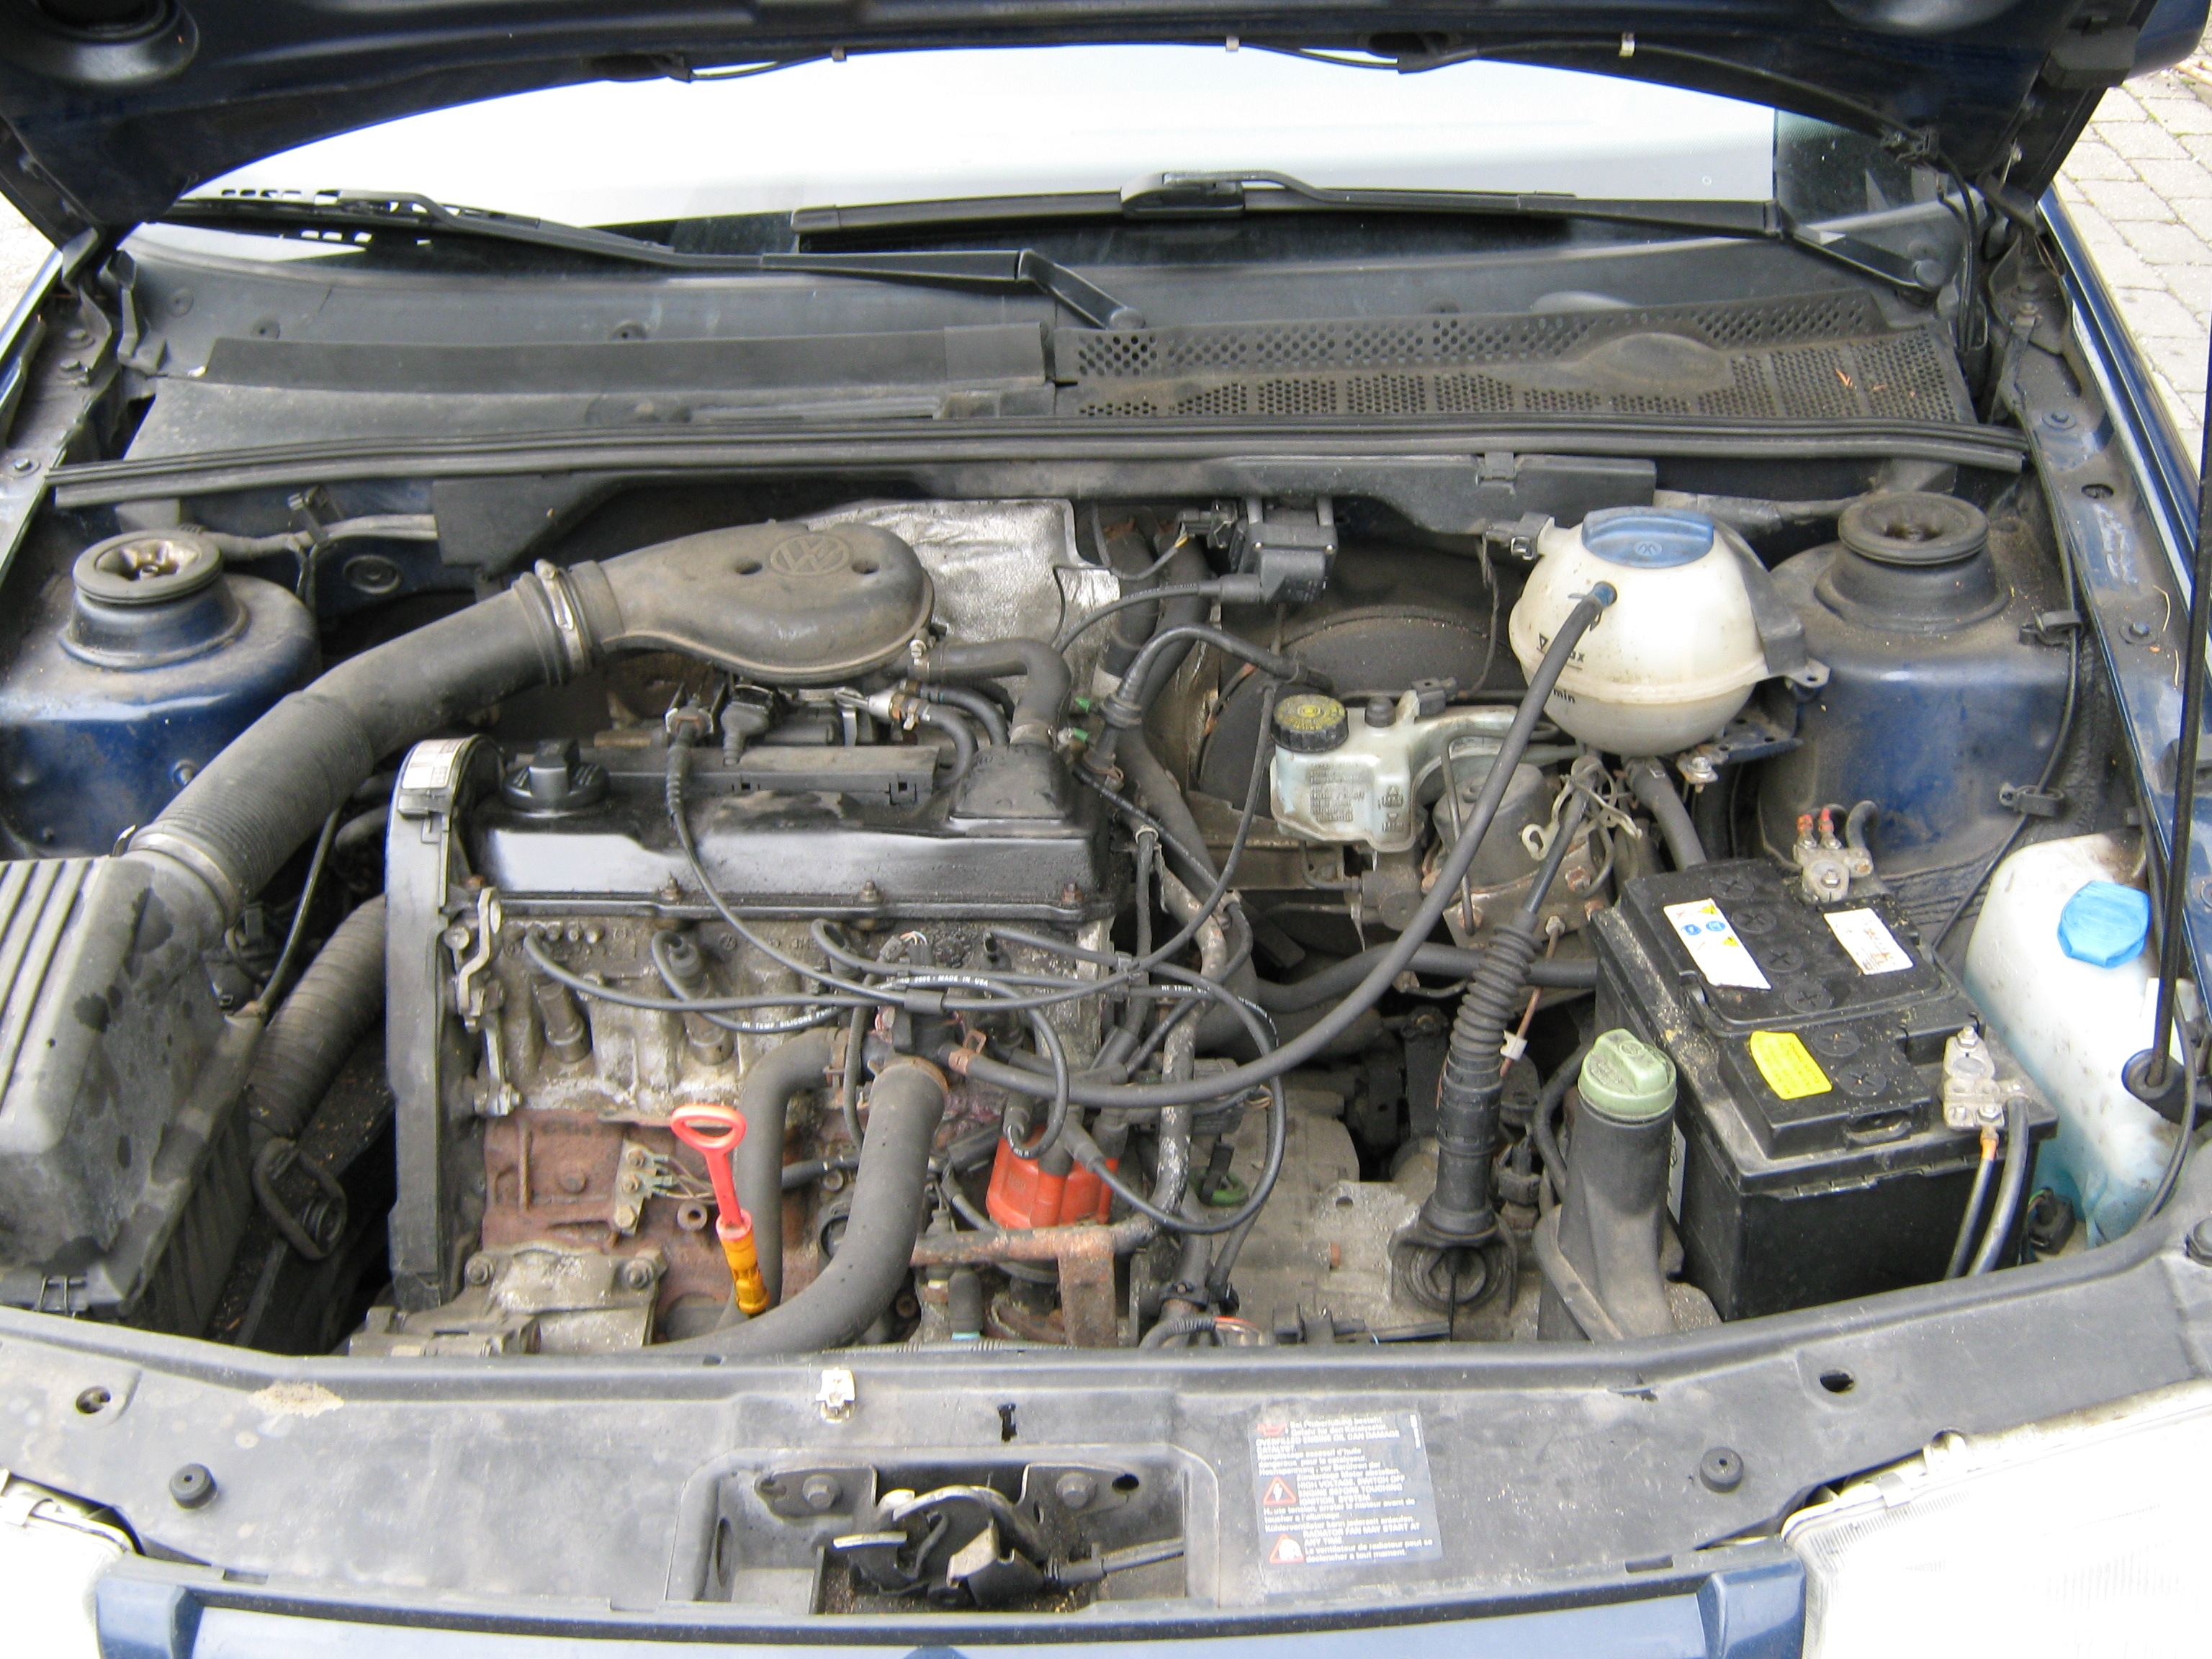 Volkswagen Ea827 Engine Wikipedia Vw Gti Cooling System A 90 Hp 18 Mounted In 1997 Jetta